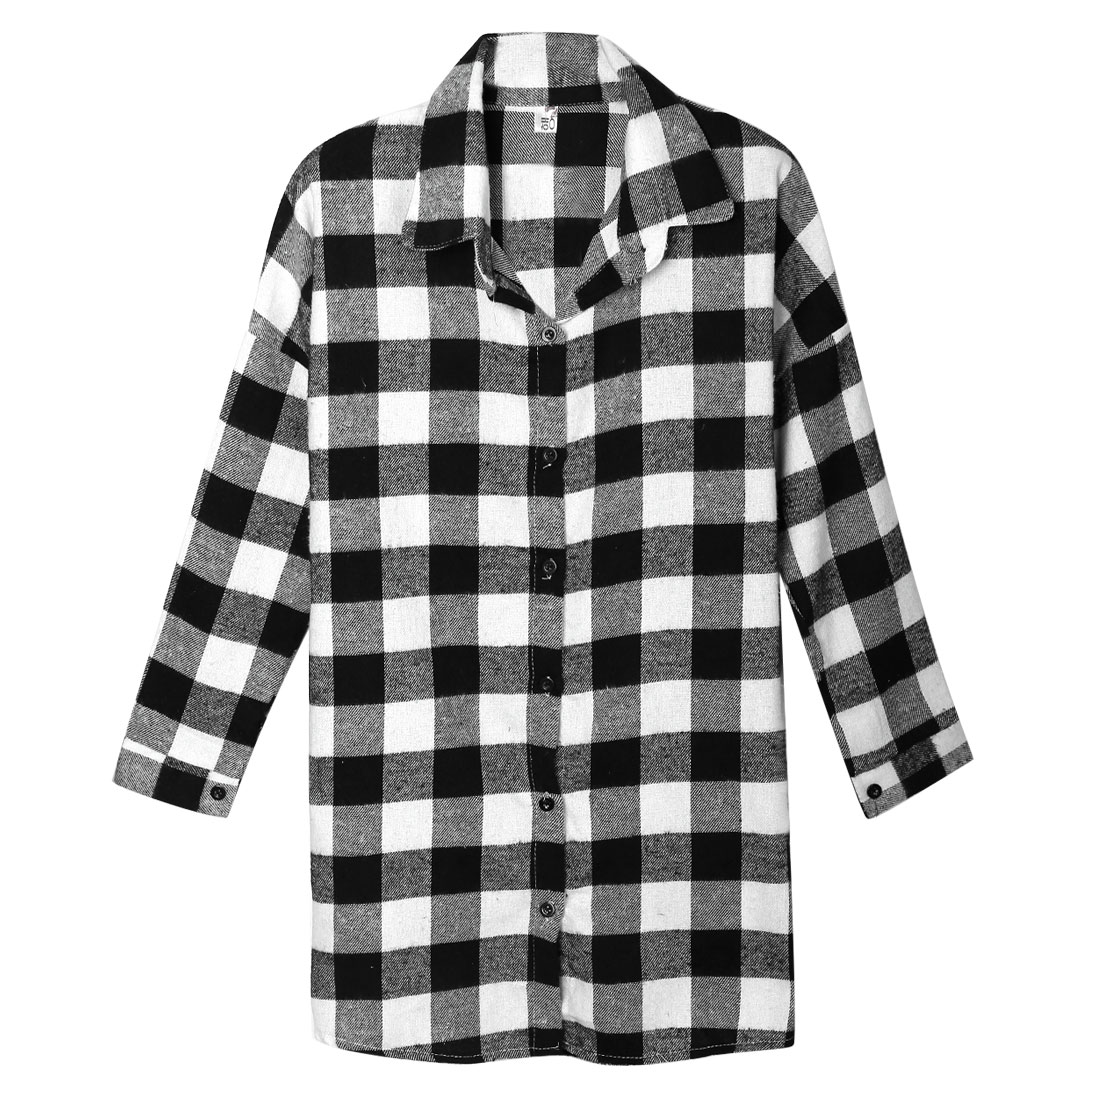 Women's Checks Batwing Sleeves Button Down Loose Fit Tunic Shirt Black White (Size M / 8)